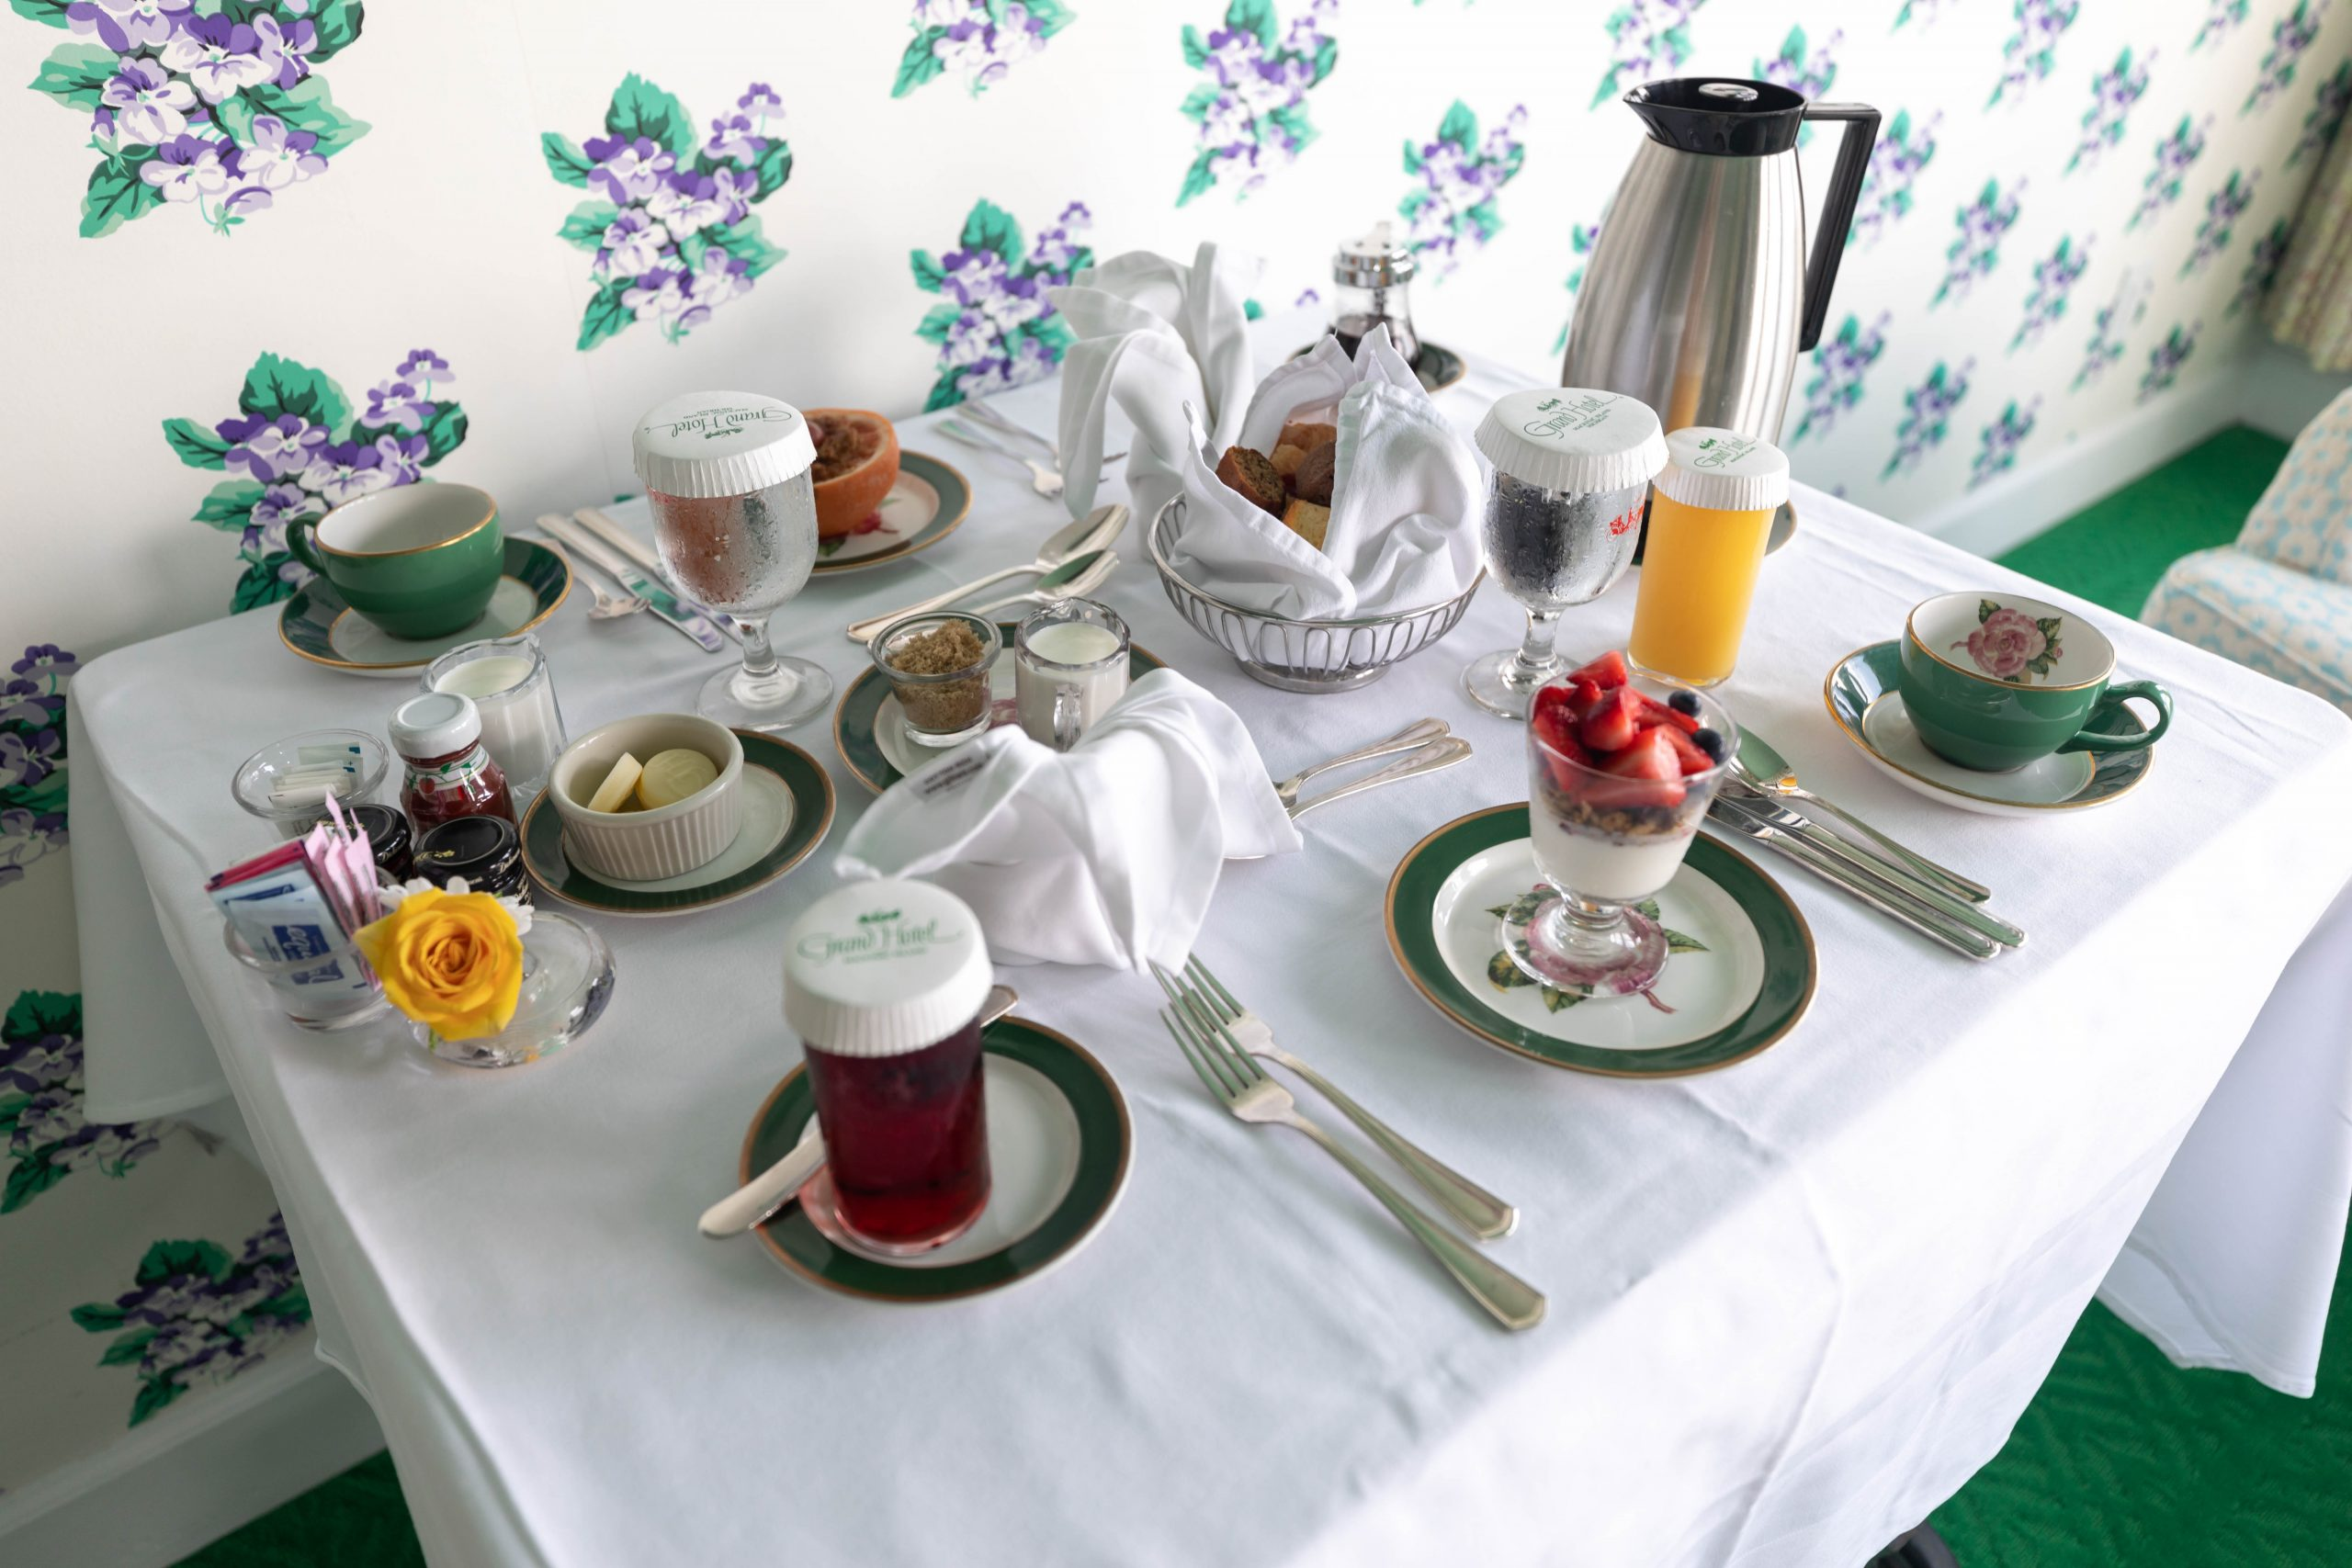 Breakfast in Bed at Grand Hotel on Mackinac Island by Annie Fairfax